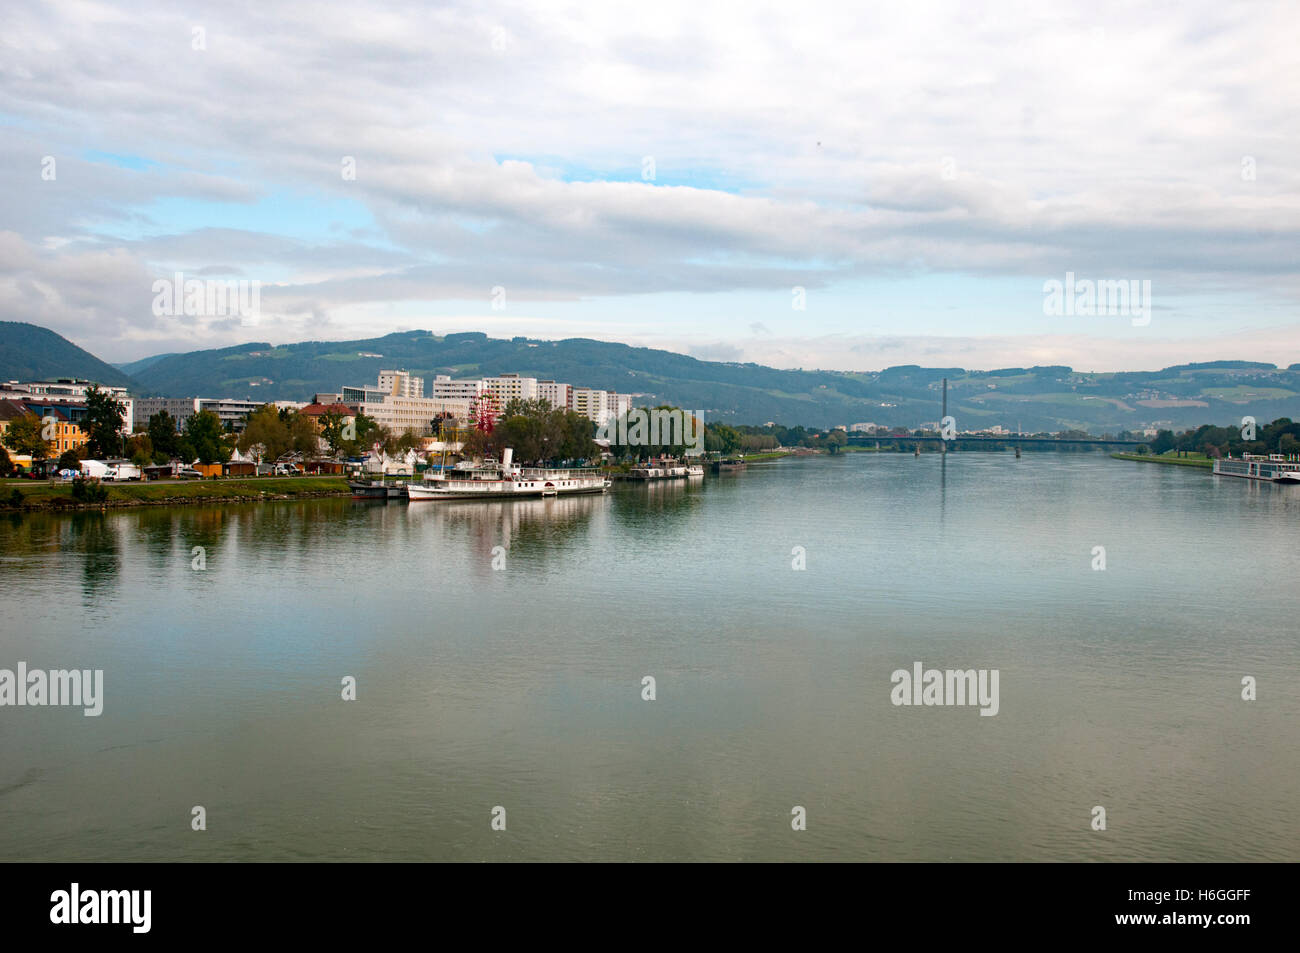 The Danube River flowing through Linz, Austria - Stock Image